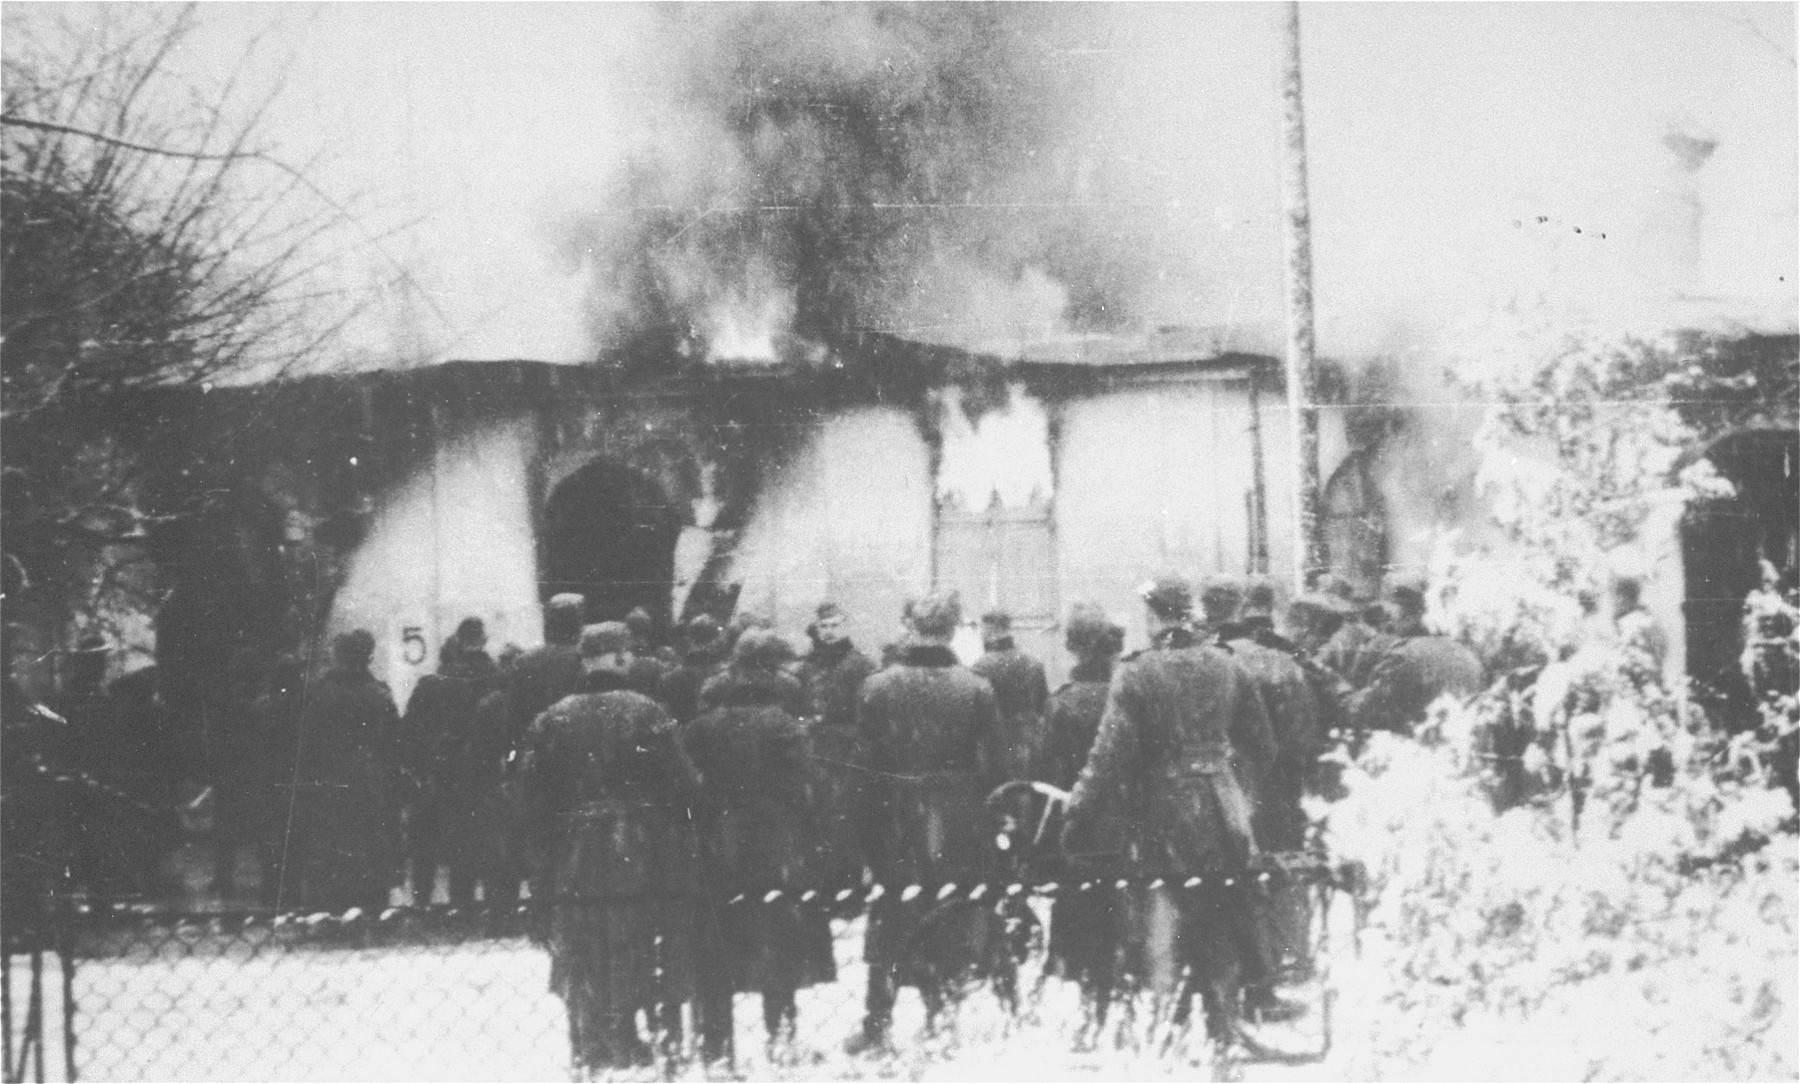 A unit of German soldiers views the burning of a synagogue in Siedlce.